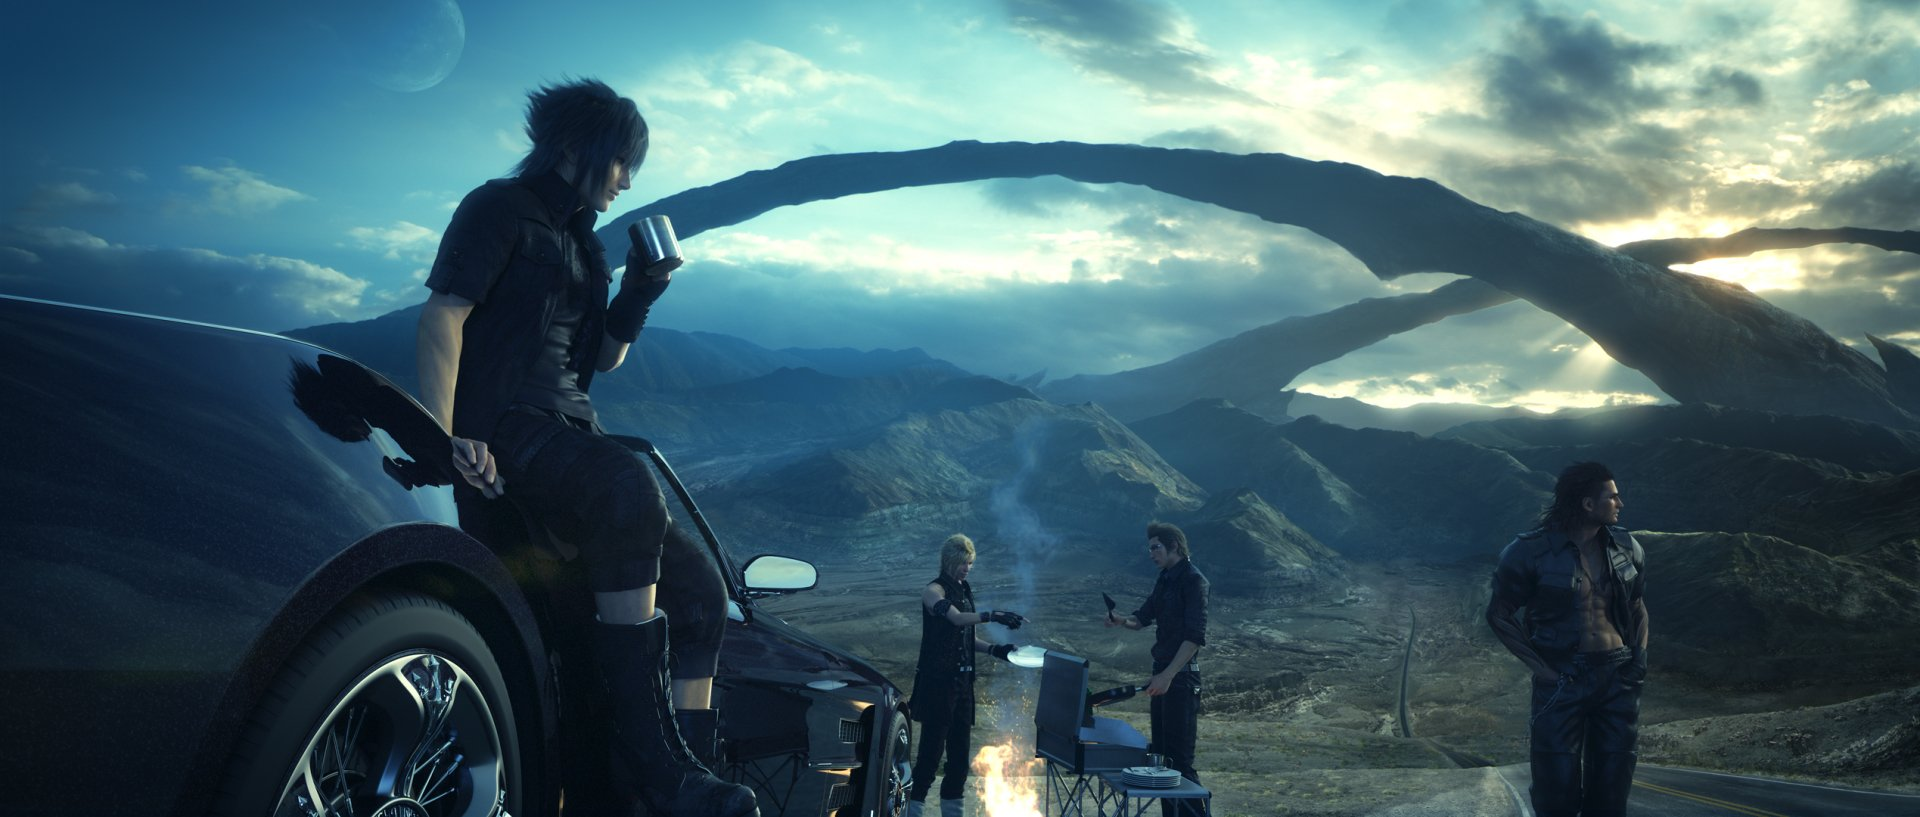 Video Game - Final Fantasy XV  Video Game Final Fantasy Sunset Wallpaper